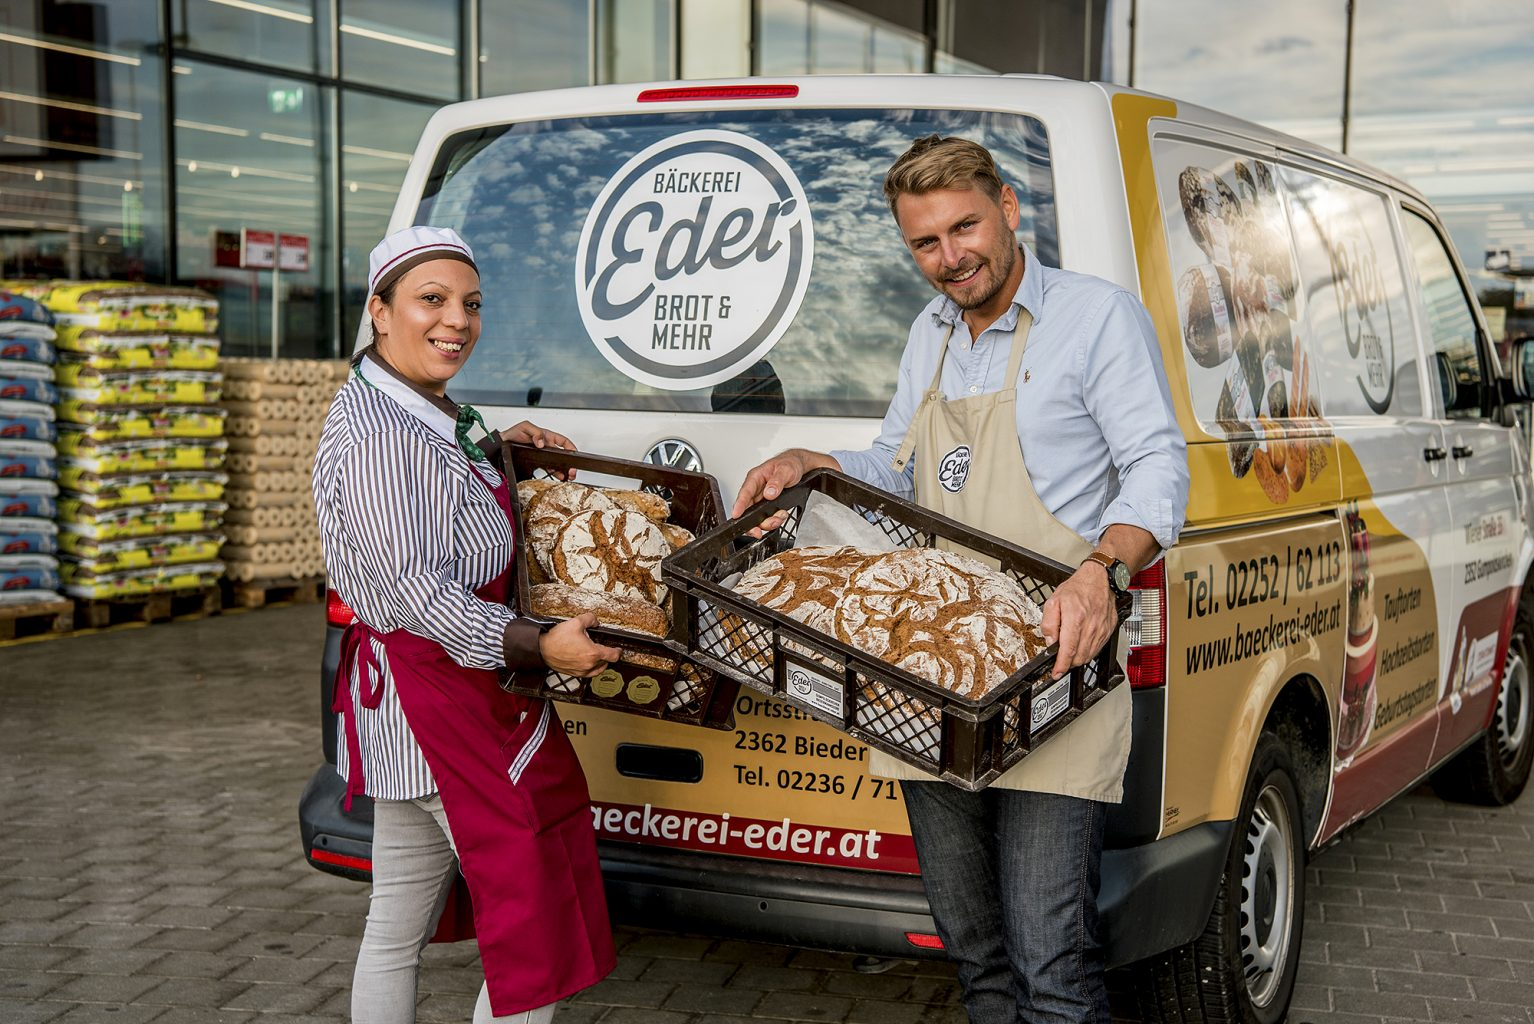 BÄCKEREI EDER FOTOSHOOTINGS